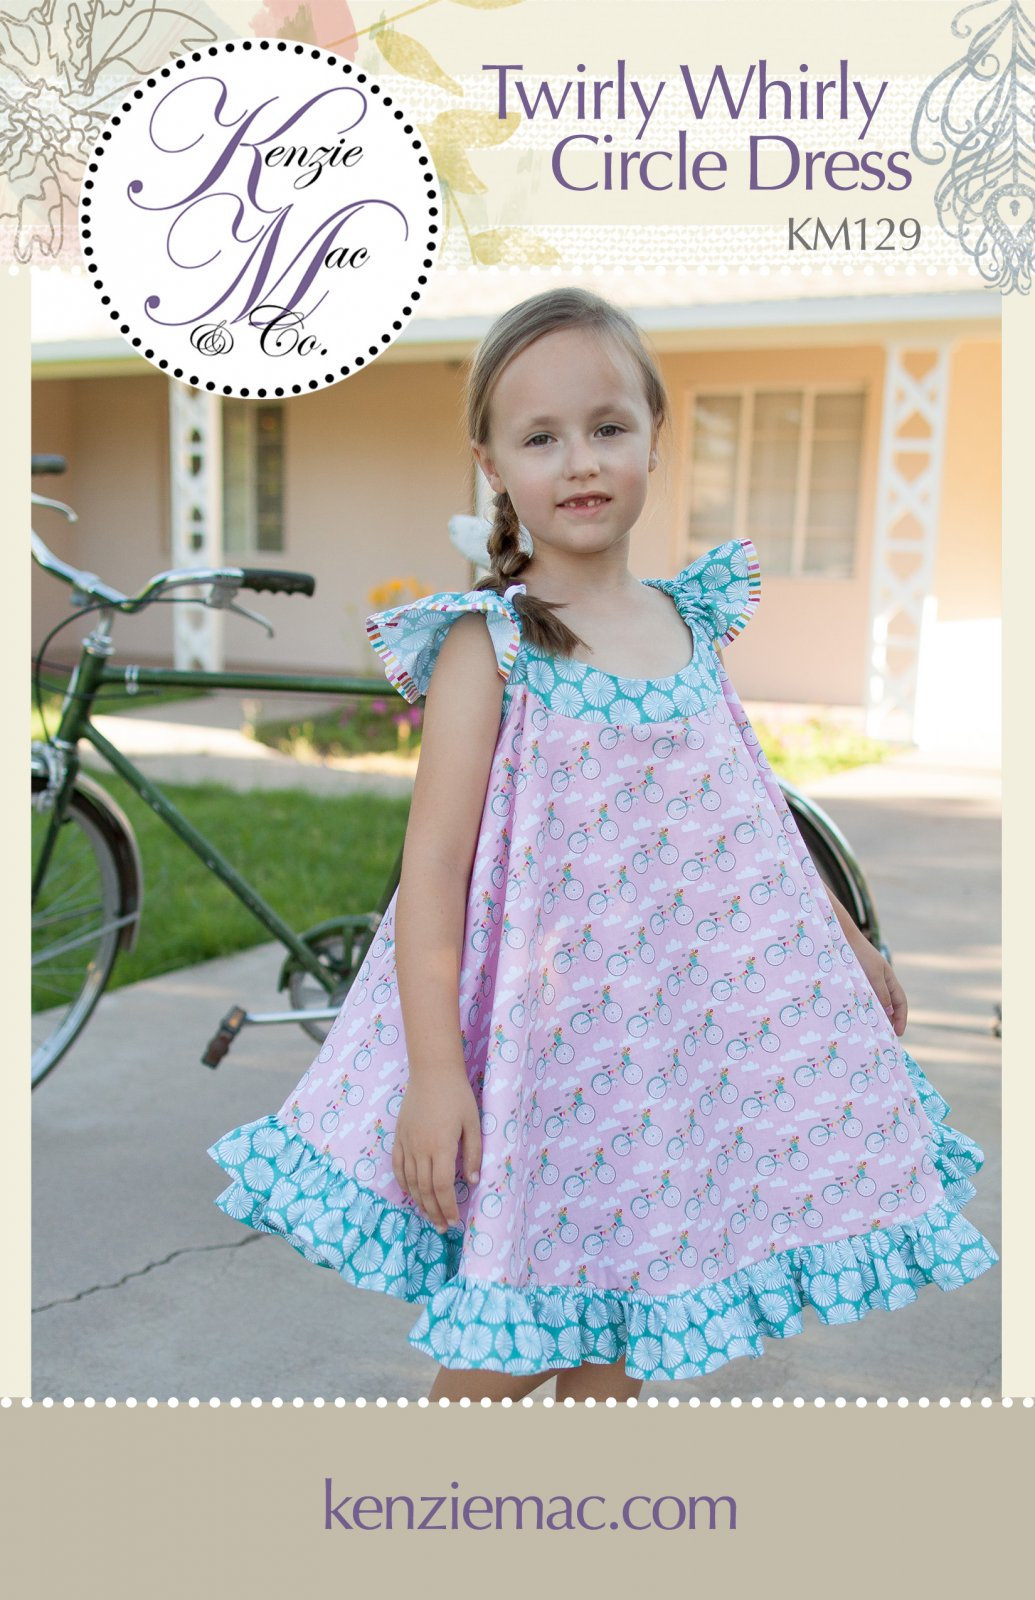 Kenzie Mac - Twirly Whirly Circle Dress